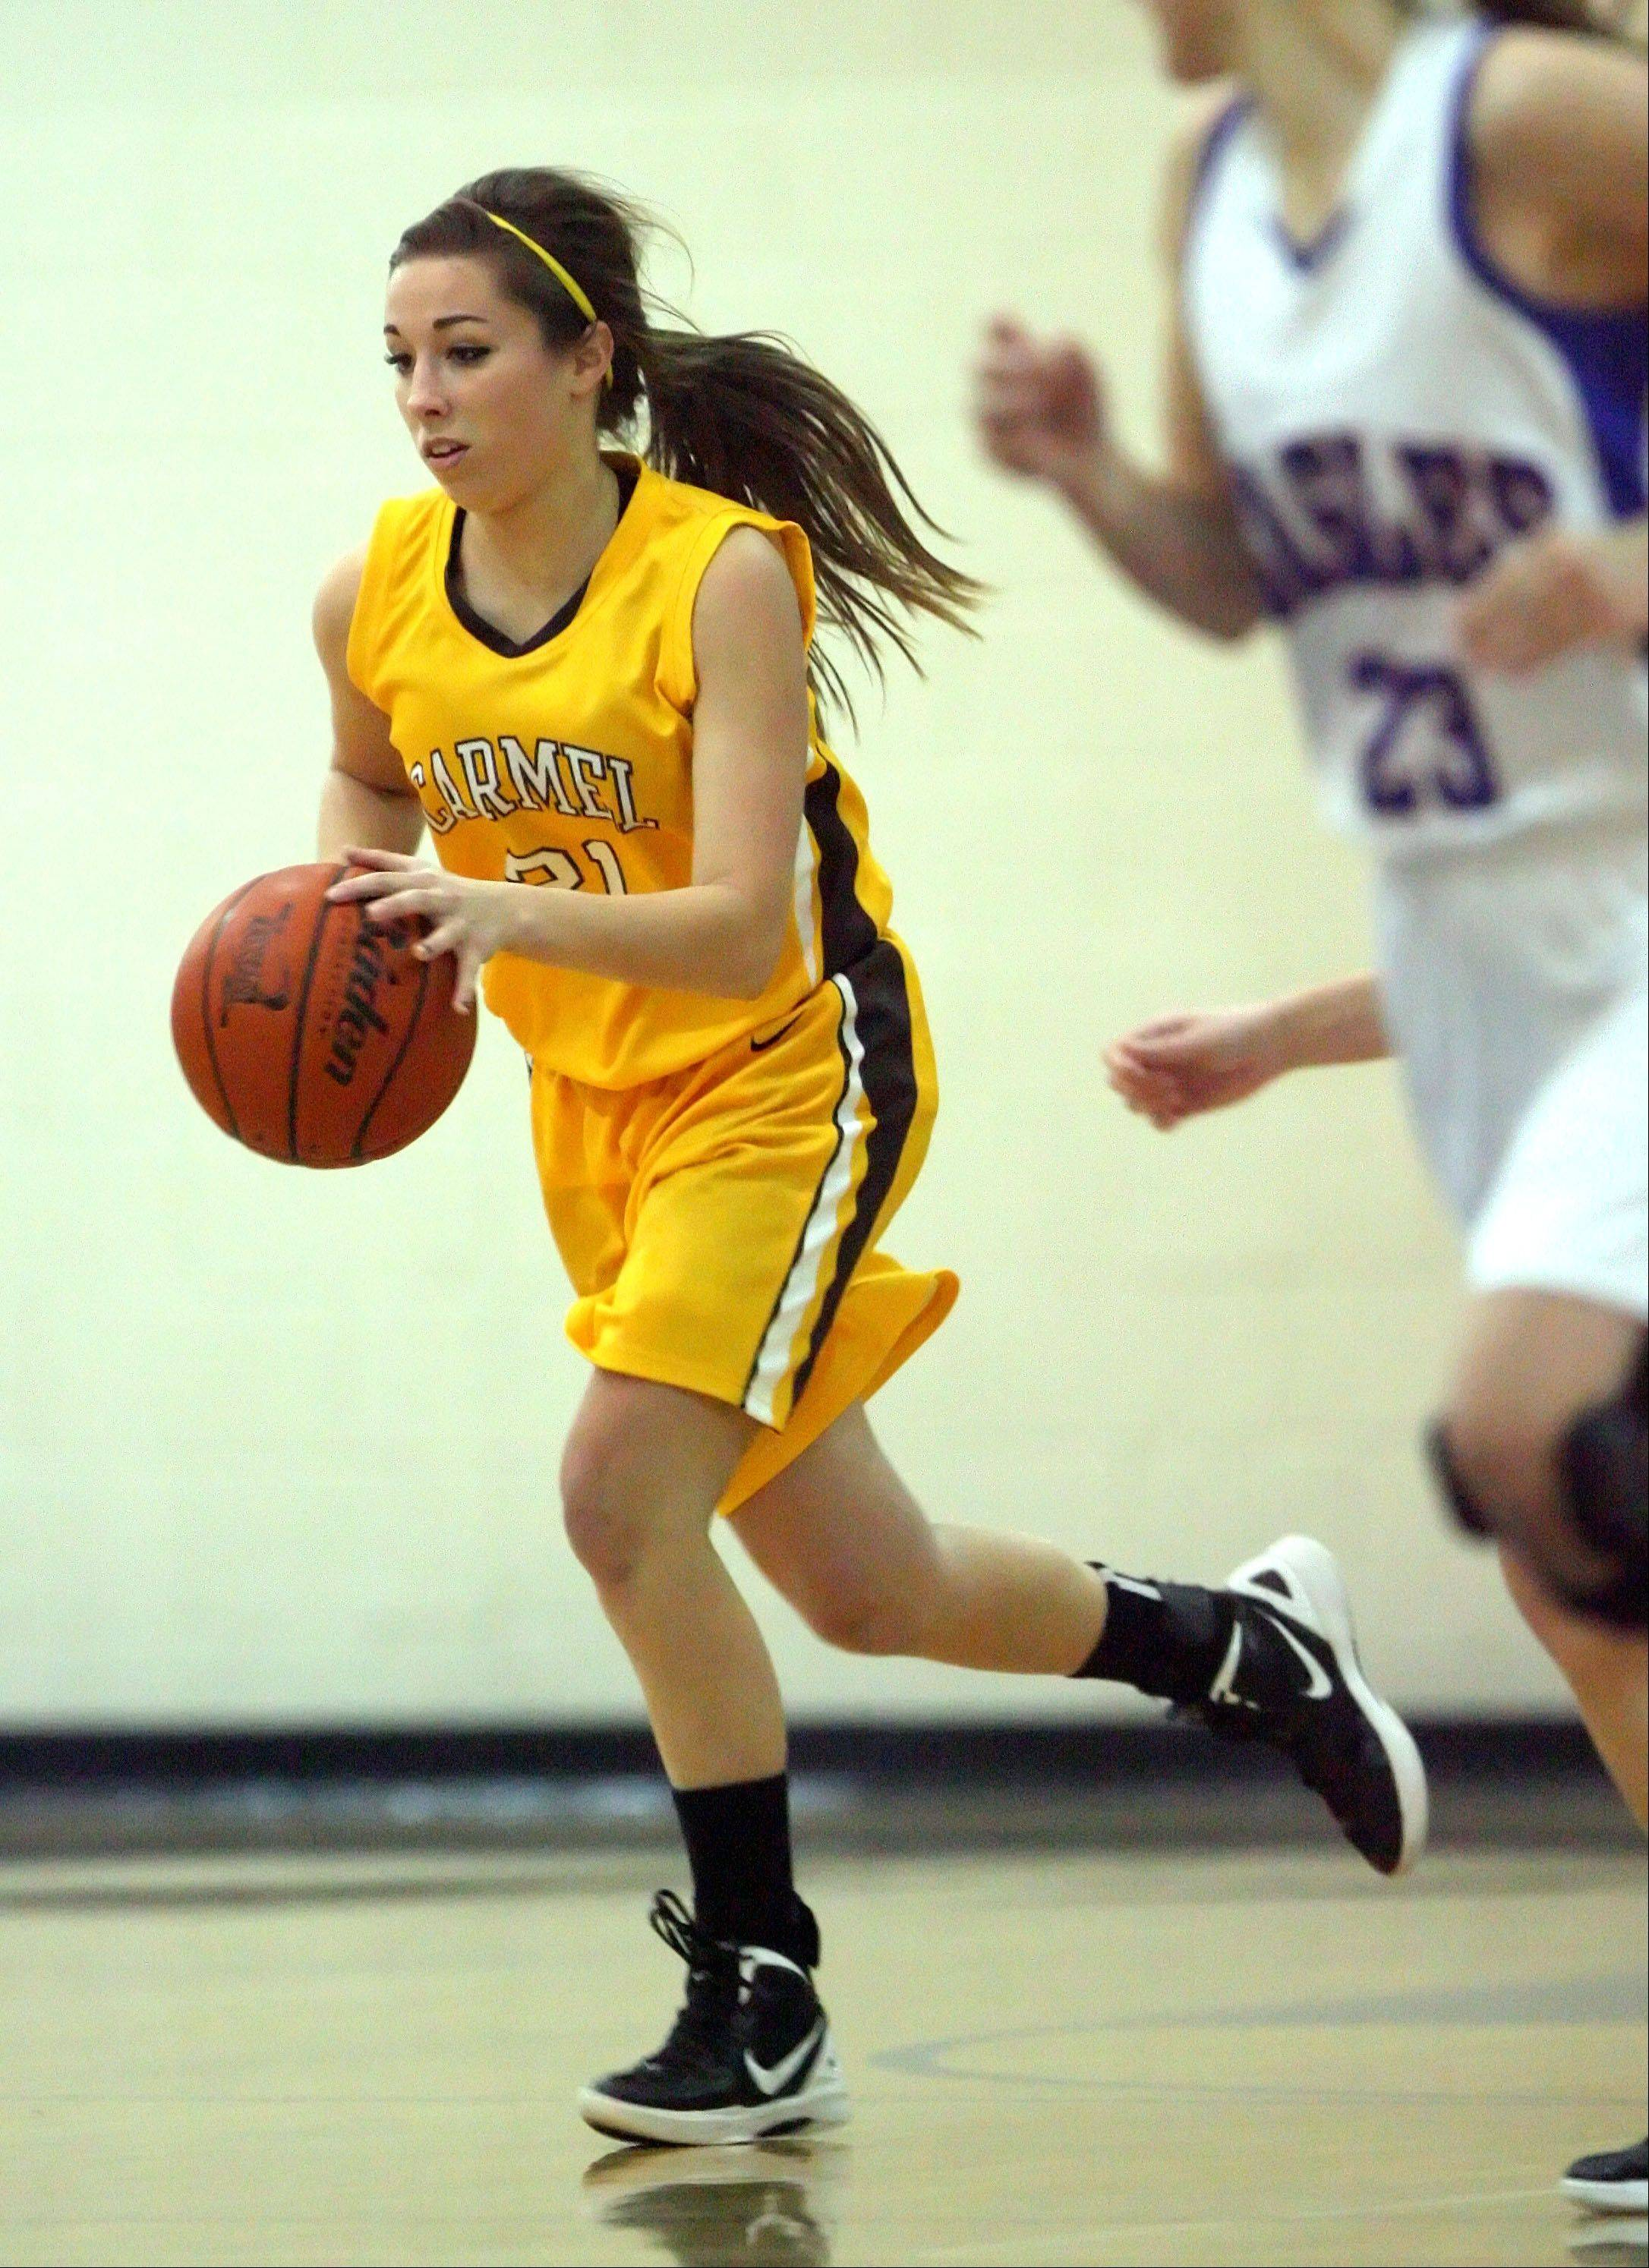 Images from the Carmel at Lakes girls basketball game on Monday, Dec. 3.